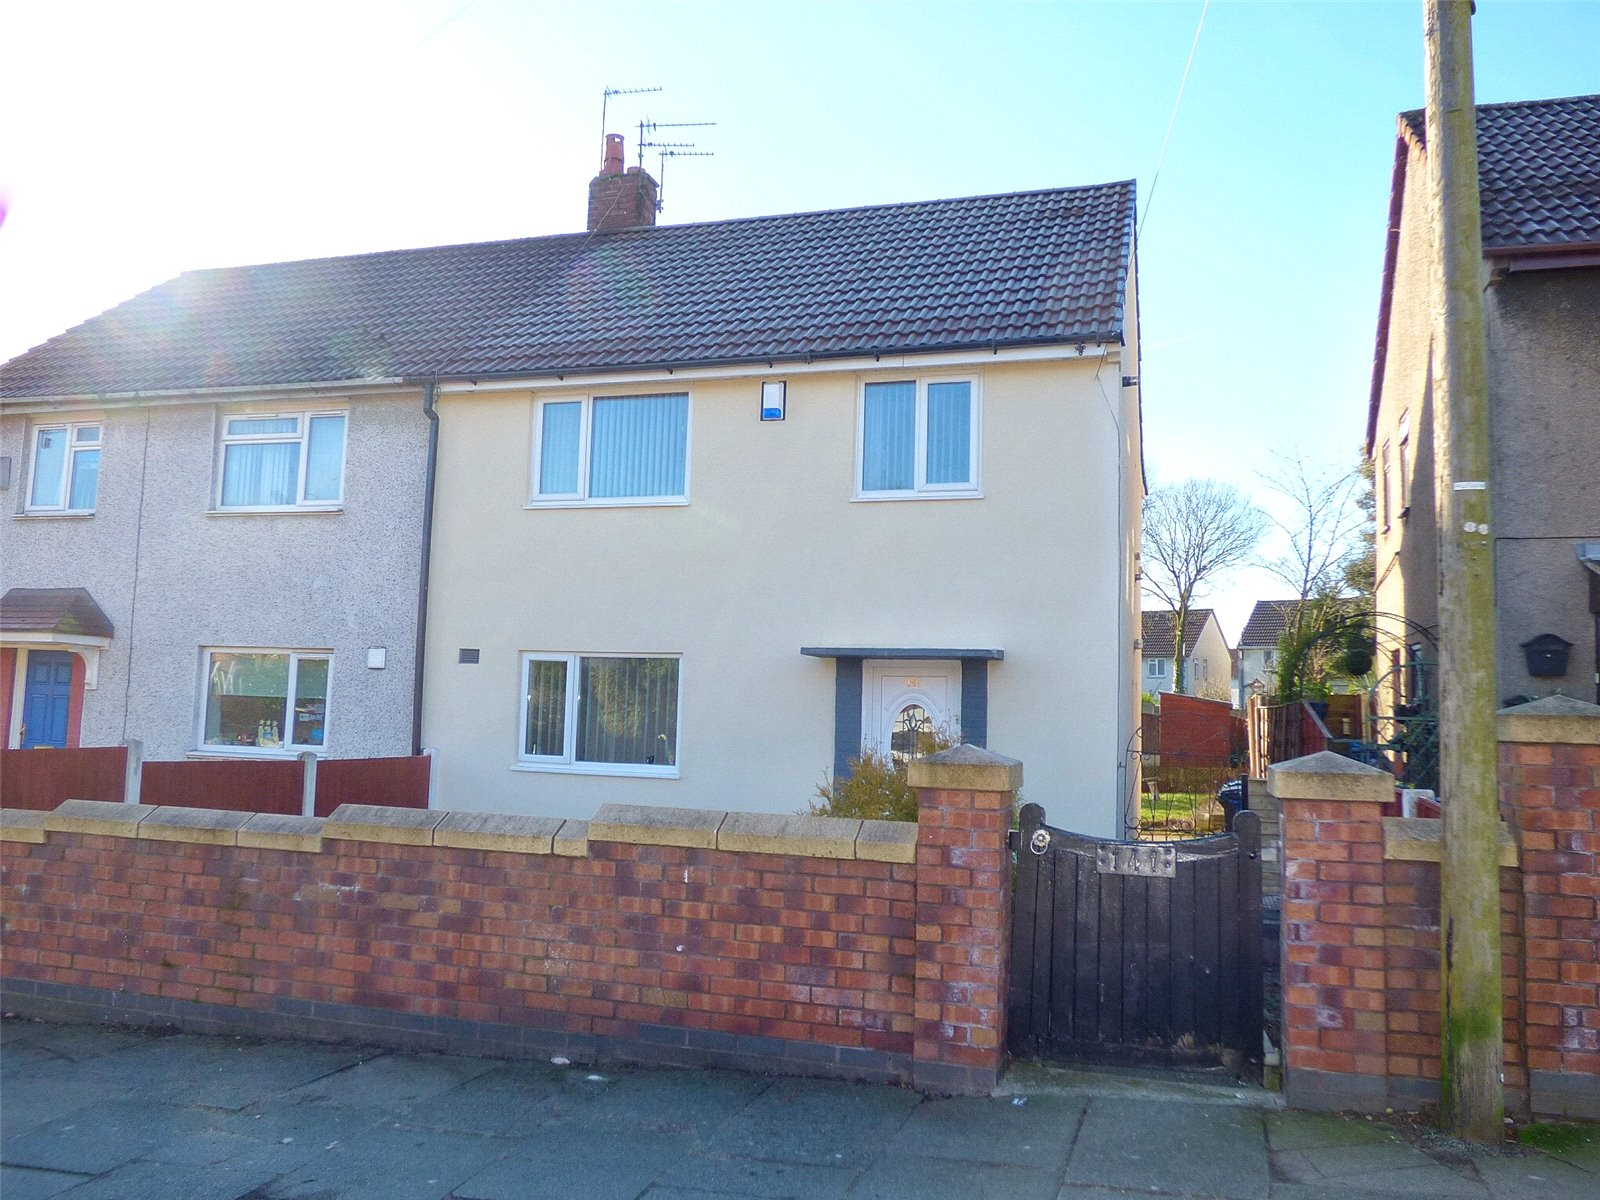 3 Bedrooms Semi Detached House for sale in Hollin Lane, Middleton, Manchester, M24